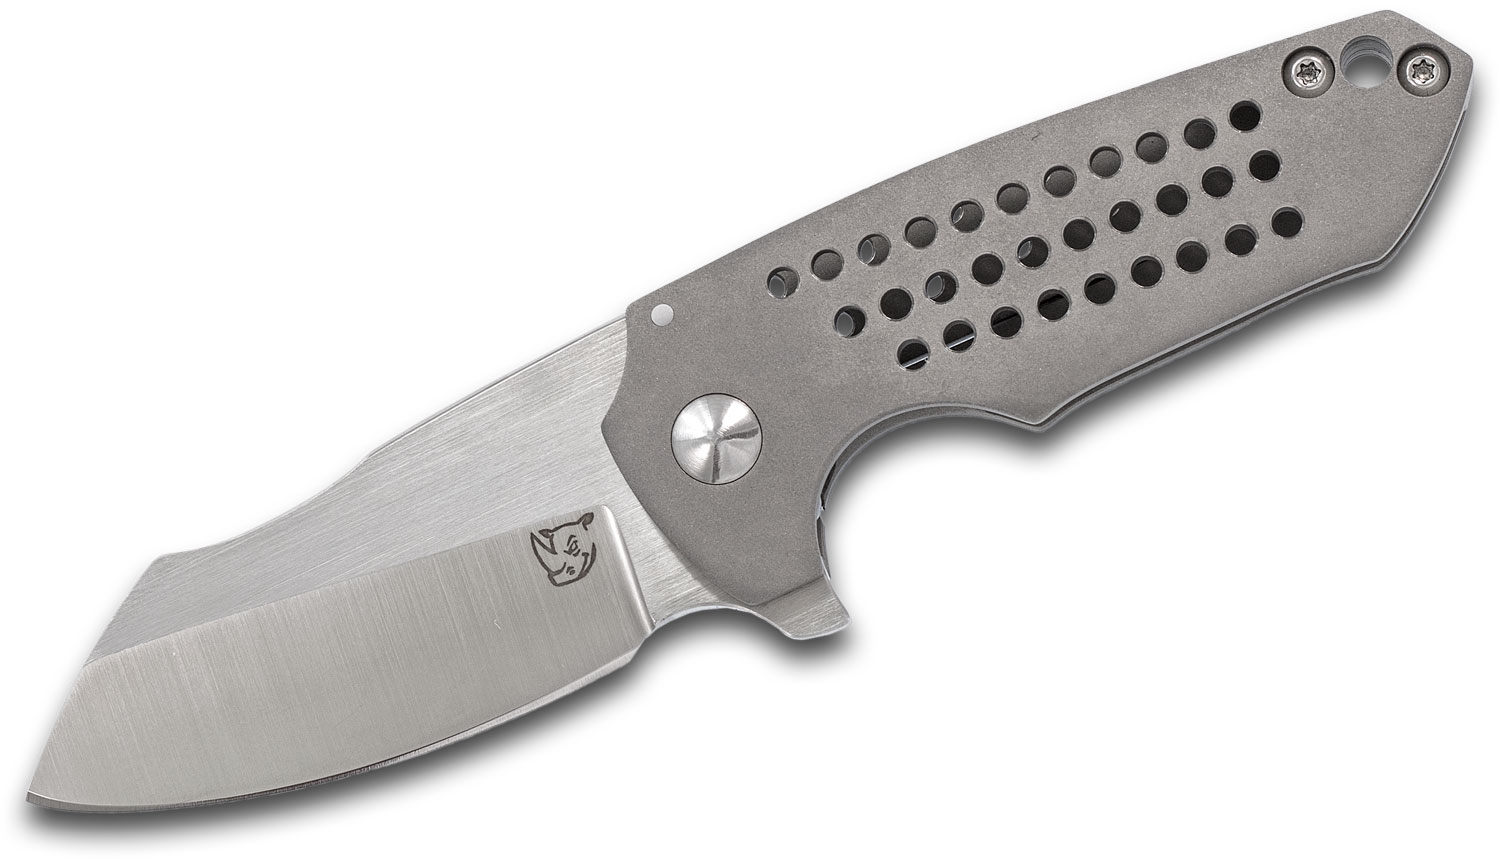 KM Designs Custom Gents Fatboy Flipper Knife 2.875 inch CPM-154 Satin Blade, Bead Blasted Titanium Handles with Milled Holes